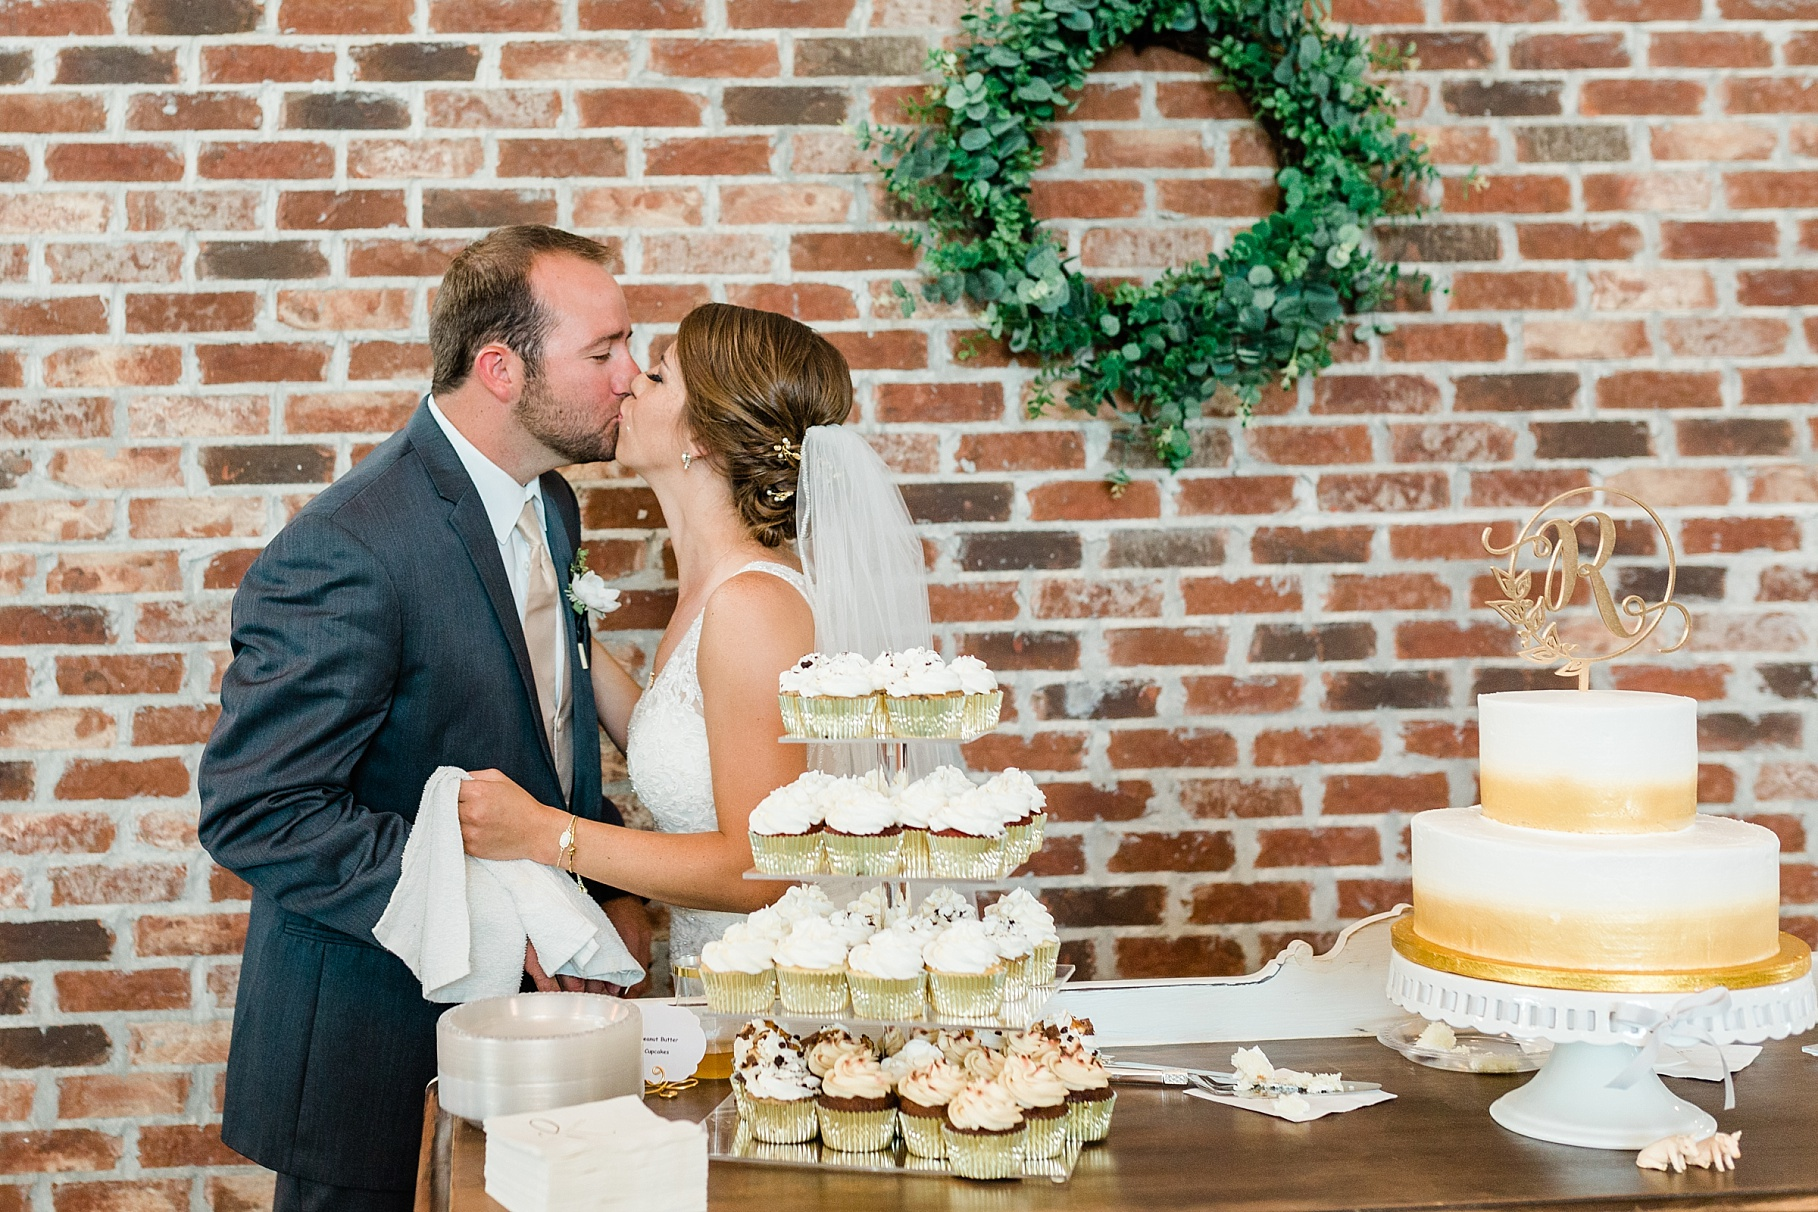 Wedding Ceremony with Confetti Pop at Emerson Fields Venue by Associate Wedding Photographer for Kelsi Kliethermes Photography Best Columbia Missouri and Maui Hawaii Wedding Photographer_0023.jpg